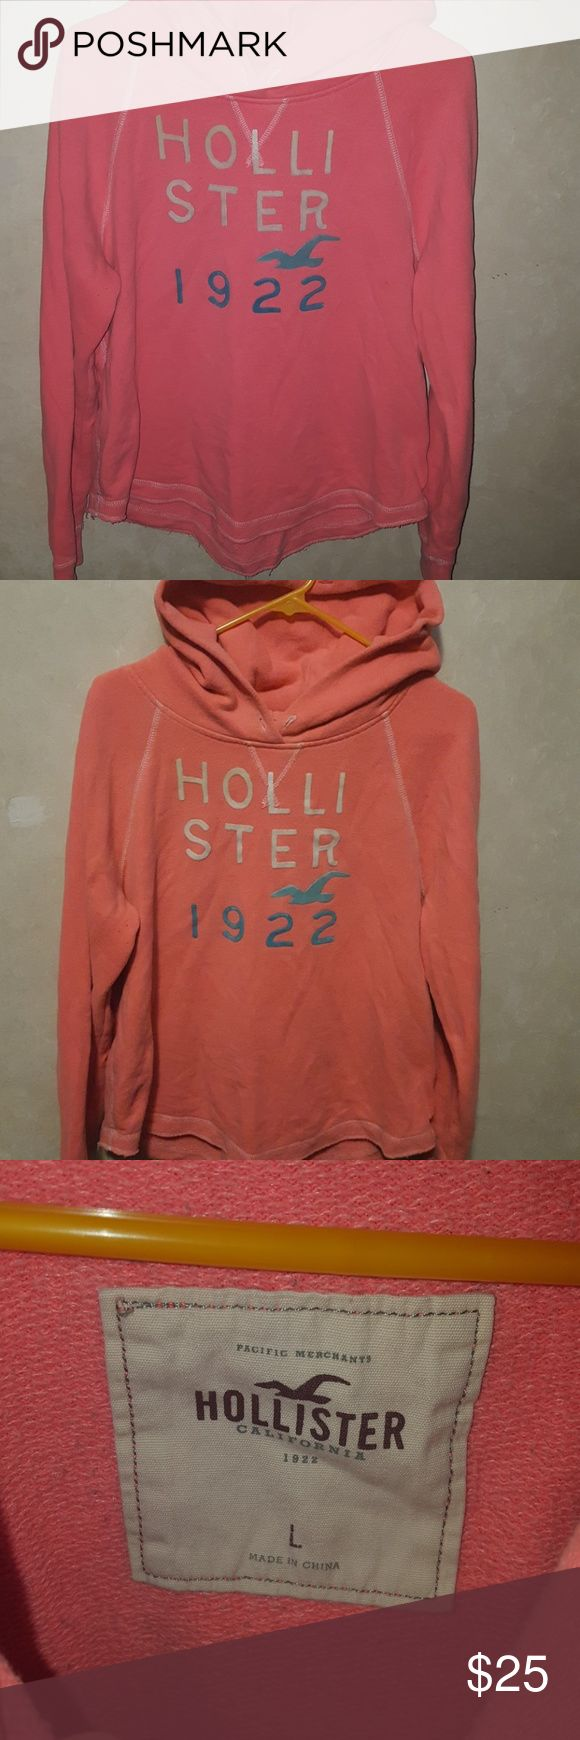 Hollister hoodie Large hoodie from Hollister. Coral colored. Hollister Tops Sweatshirts & Hoodies